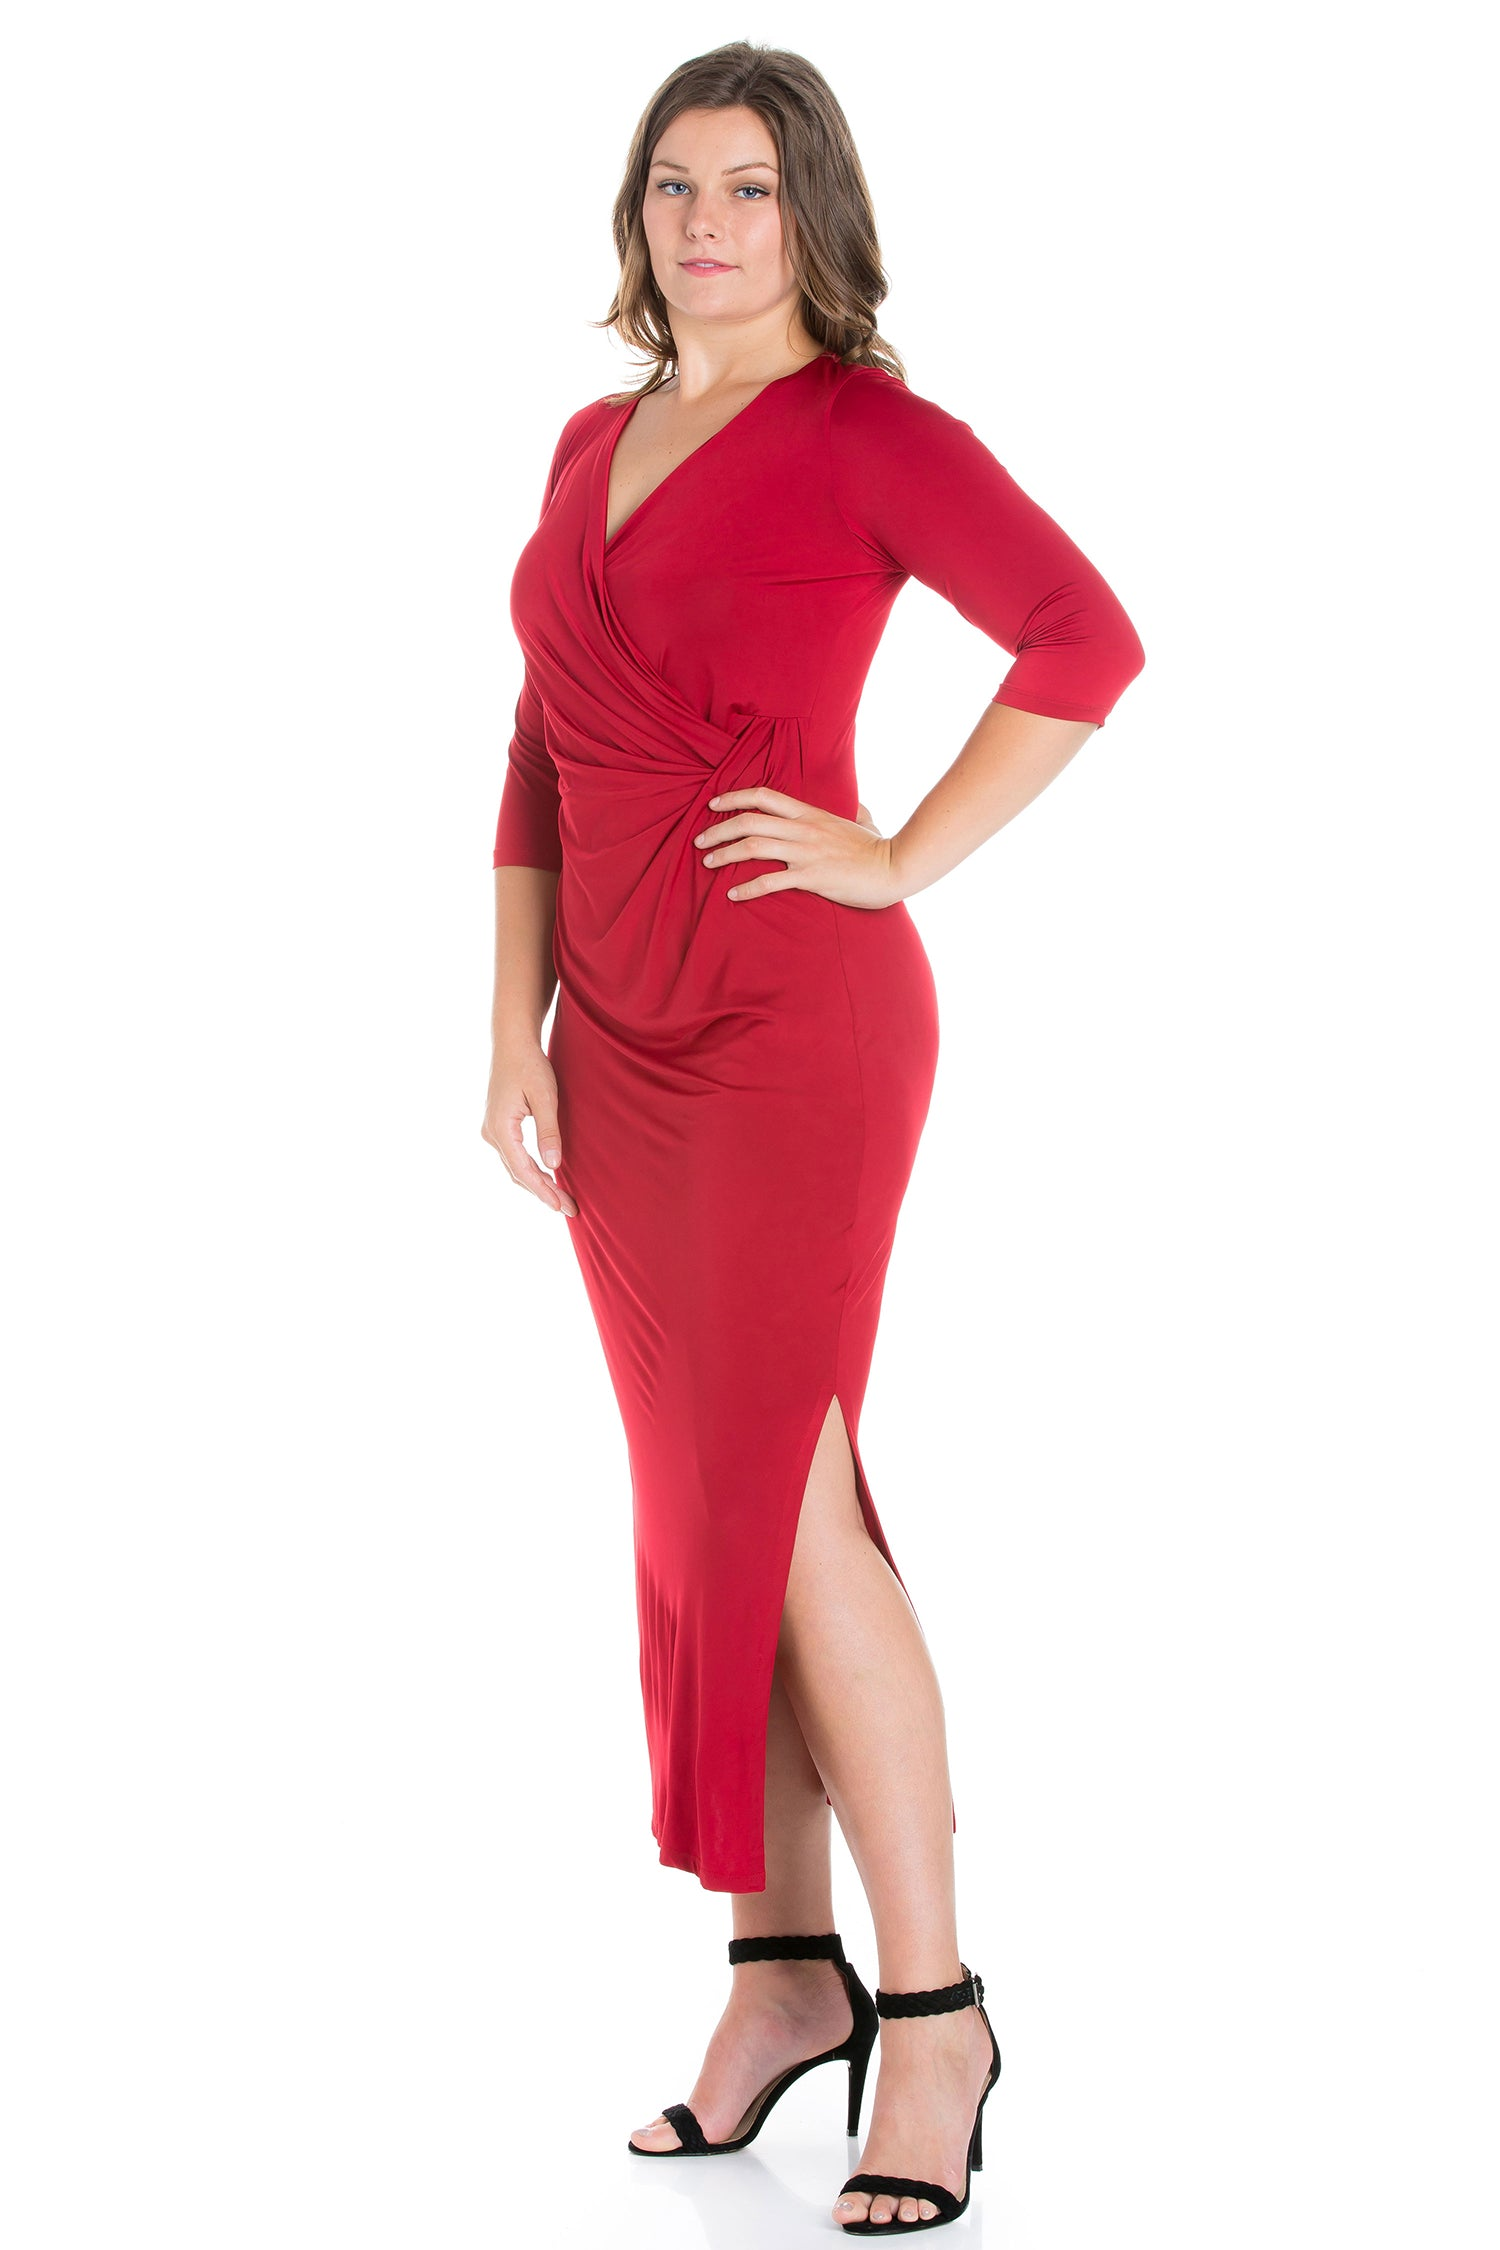 24seven Comfort Appare Fitted V-Neck Side Slit Plus Size Maxi Dress-DRESSES-24Seven Comfort Apparel-PRINT-1X-24/7 Comfort Apparel